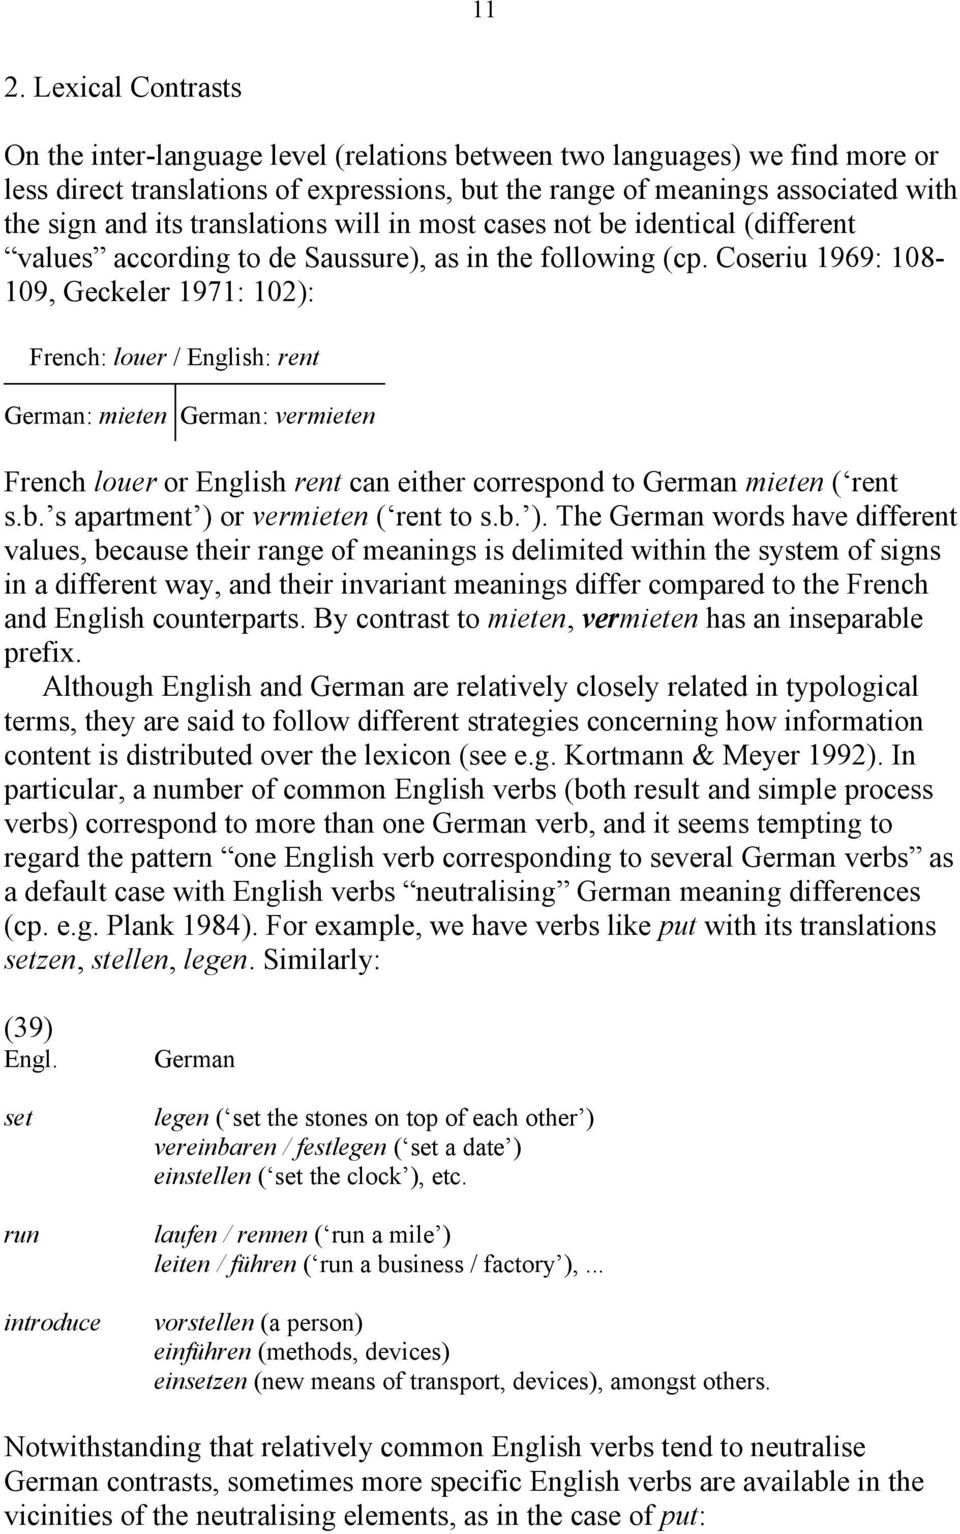 Coseriu 1969: 108-109, Geckeler 1971: 102): French: louer / English: rent German: mieten German: vermieten French louer or English rent can either correspond to German mieten ( rent s.b.